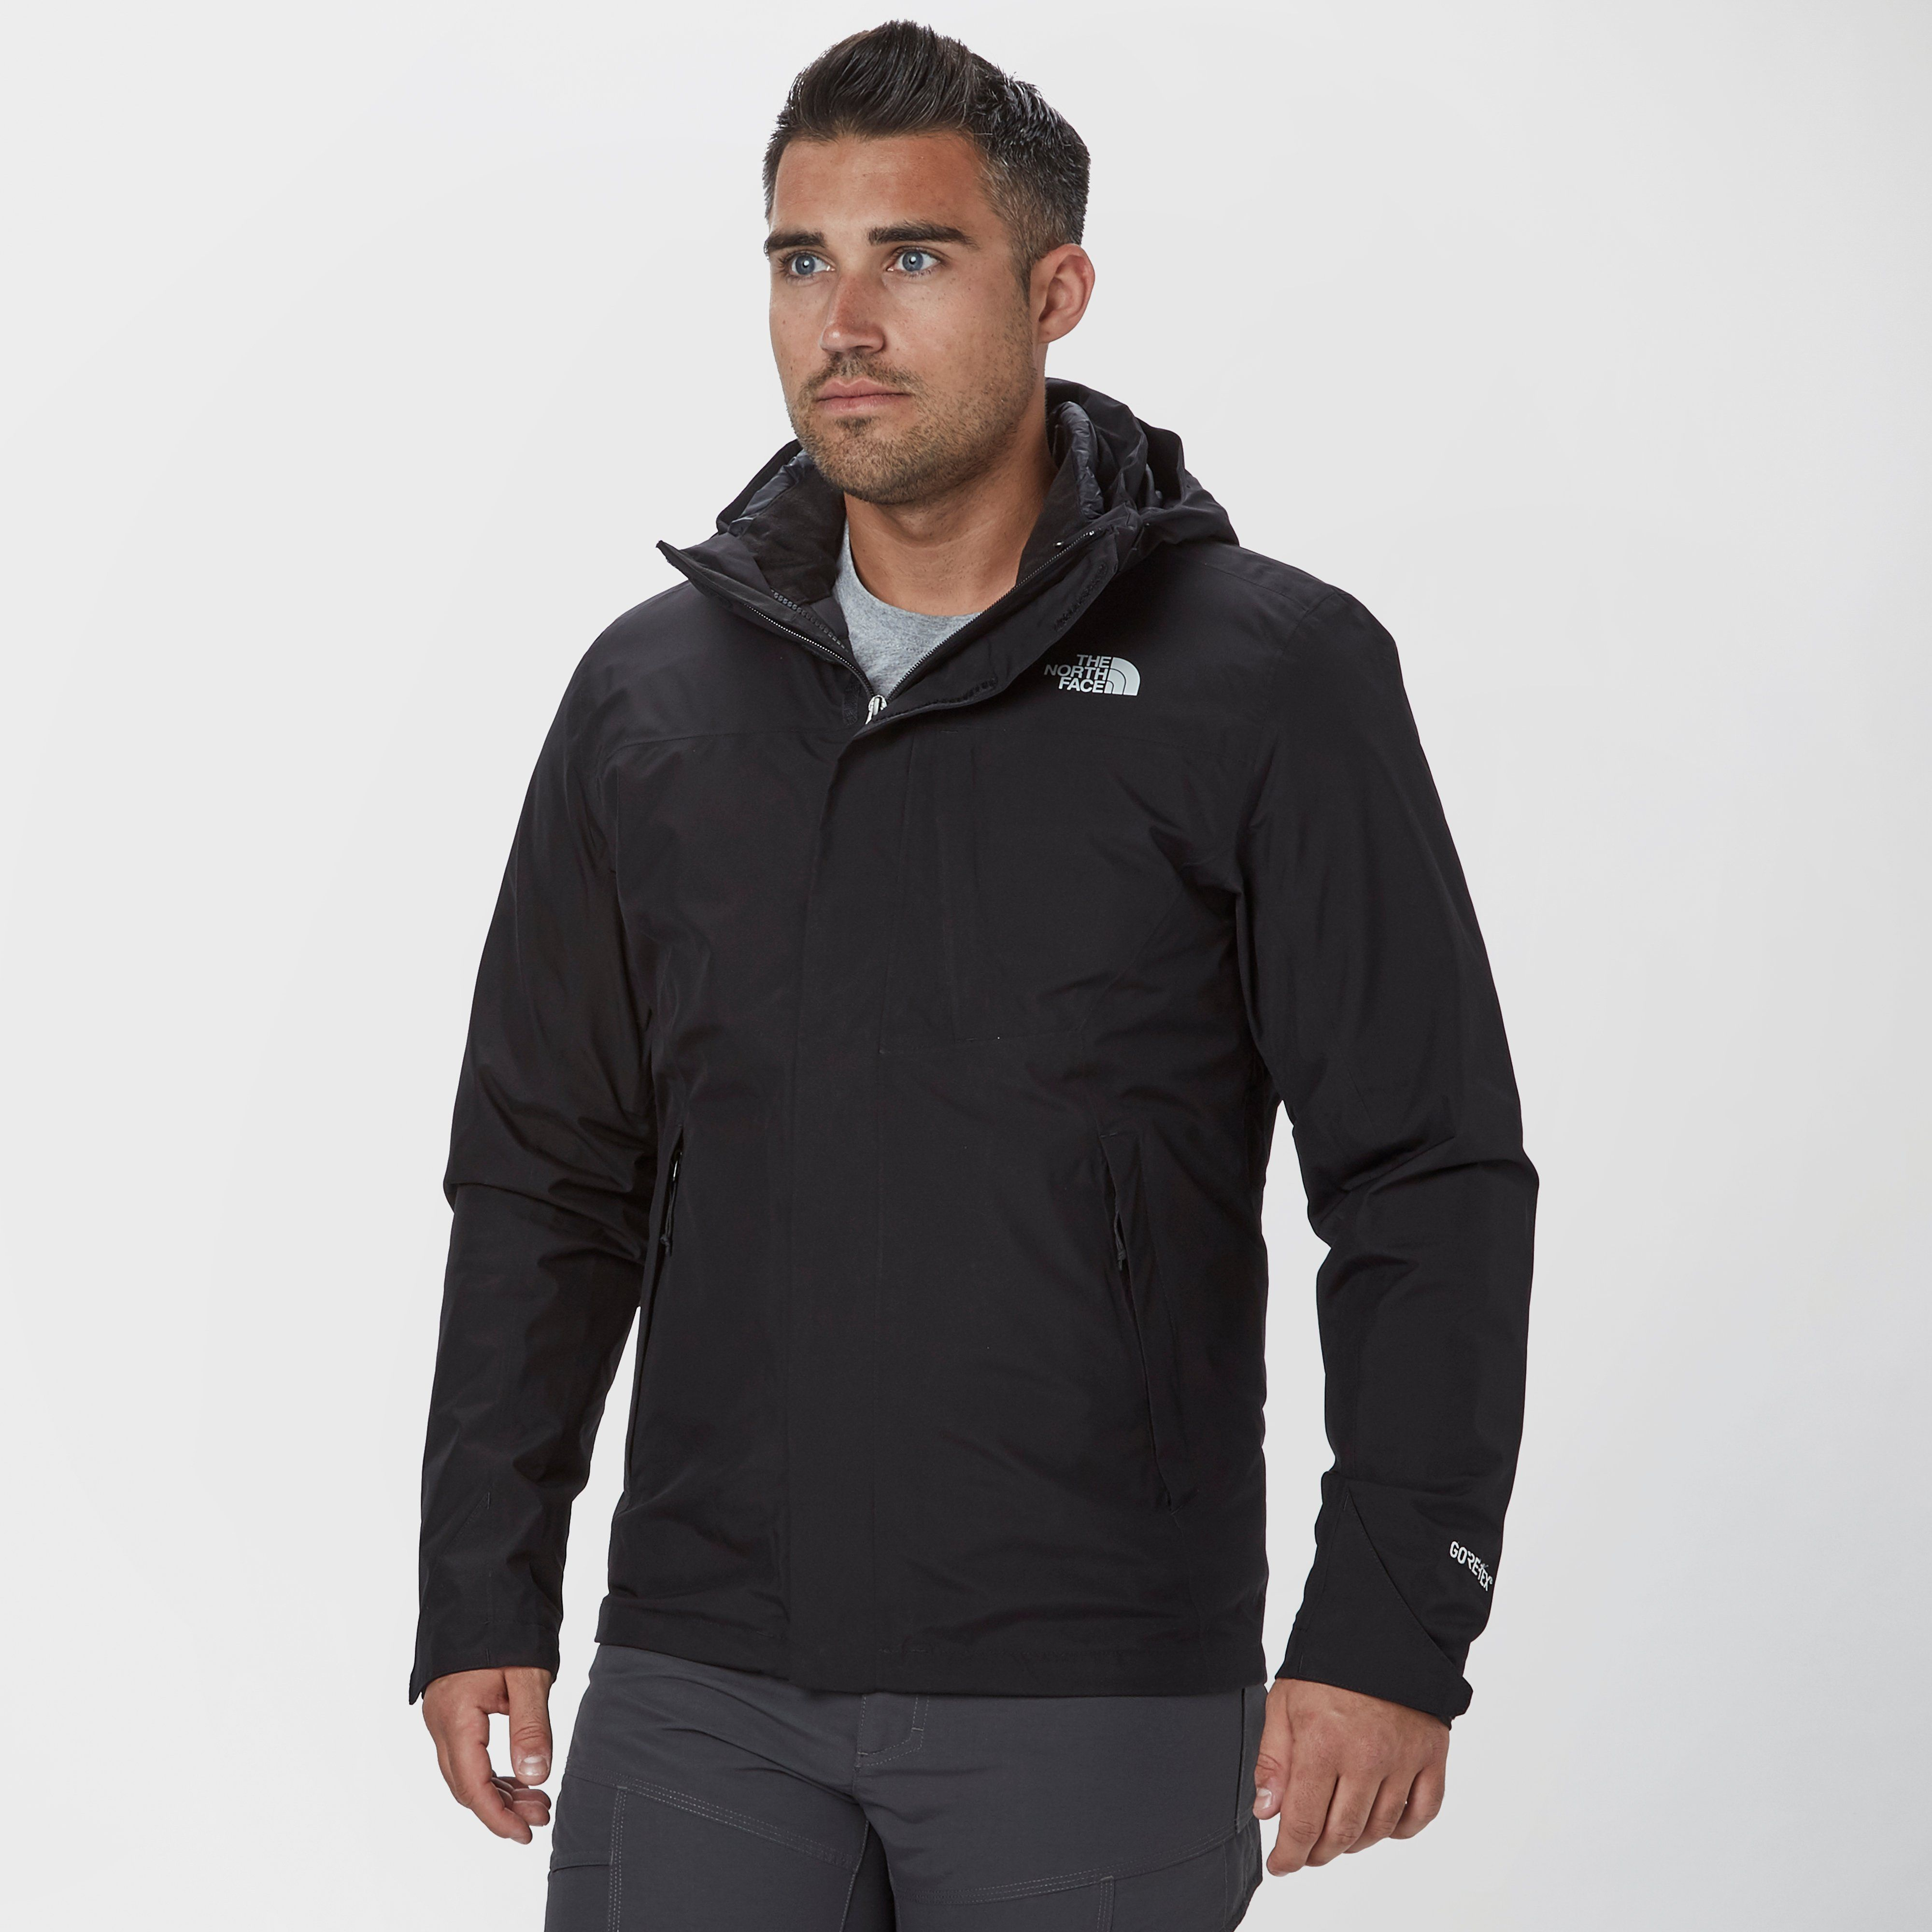 THE NORTH FACE Men's Mountain Light Triclimate 3-in-1 Jacket